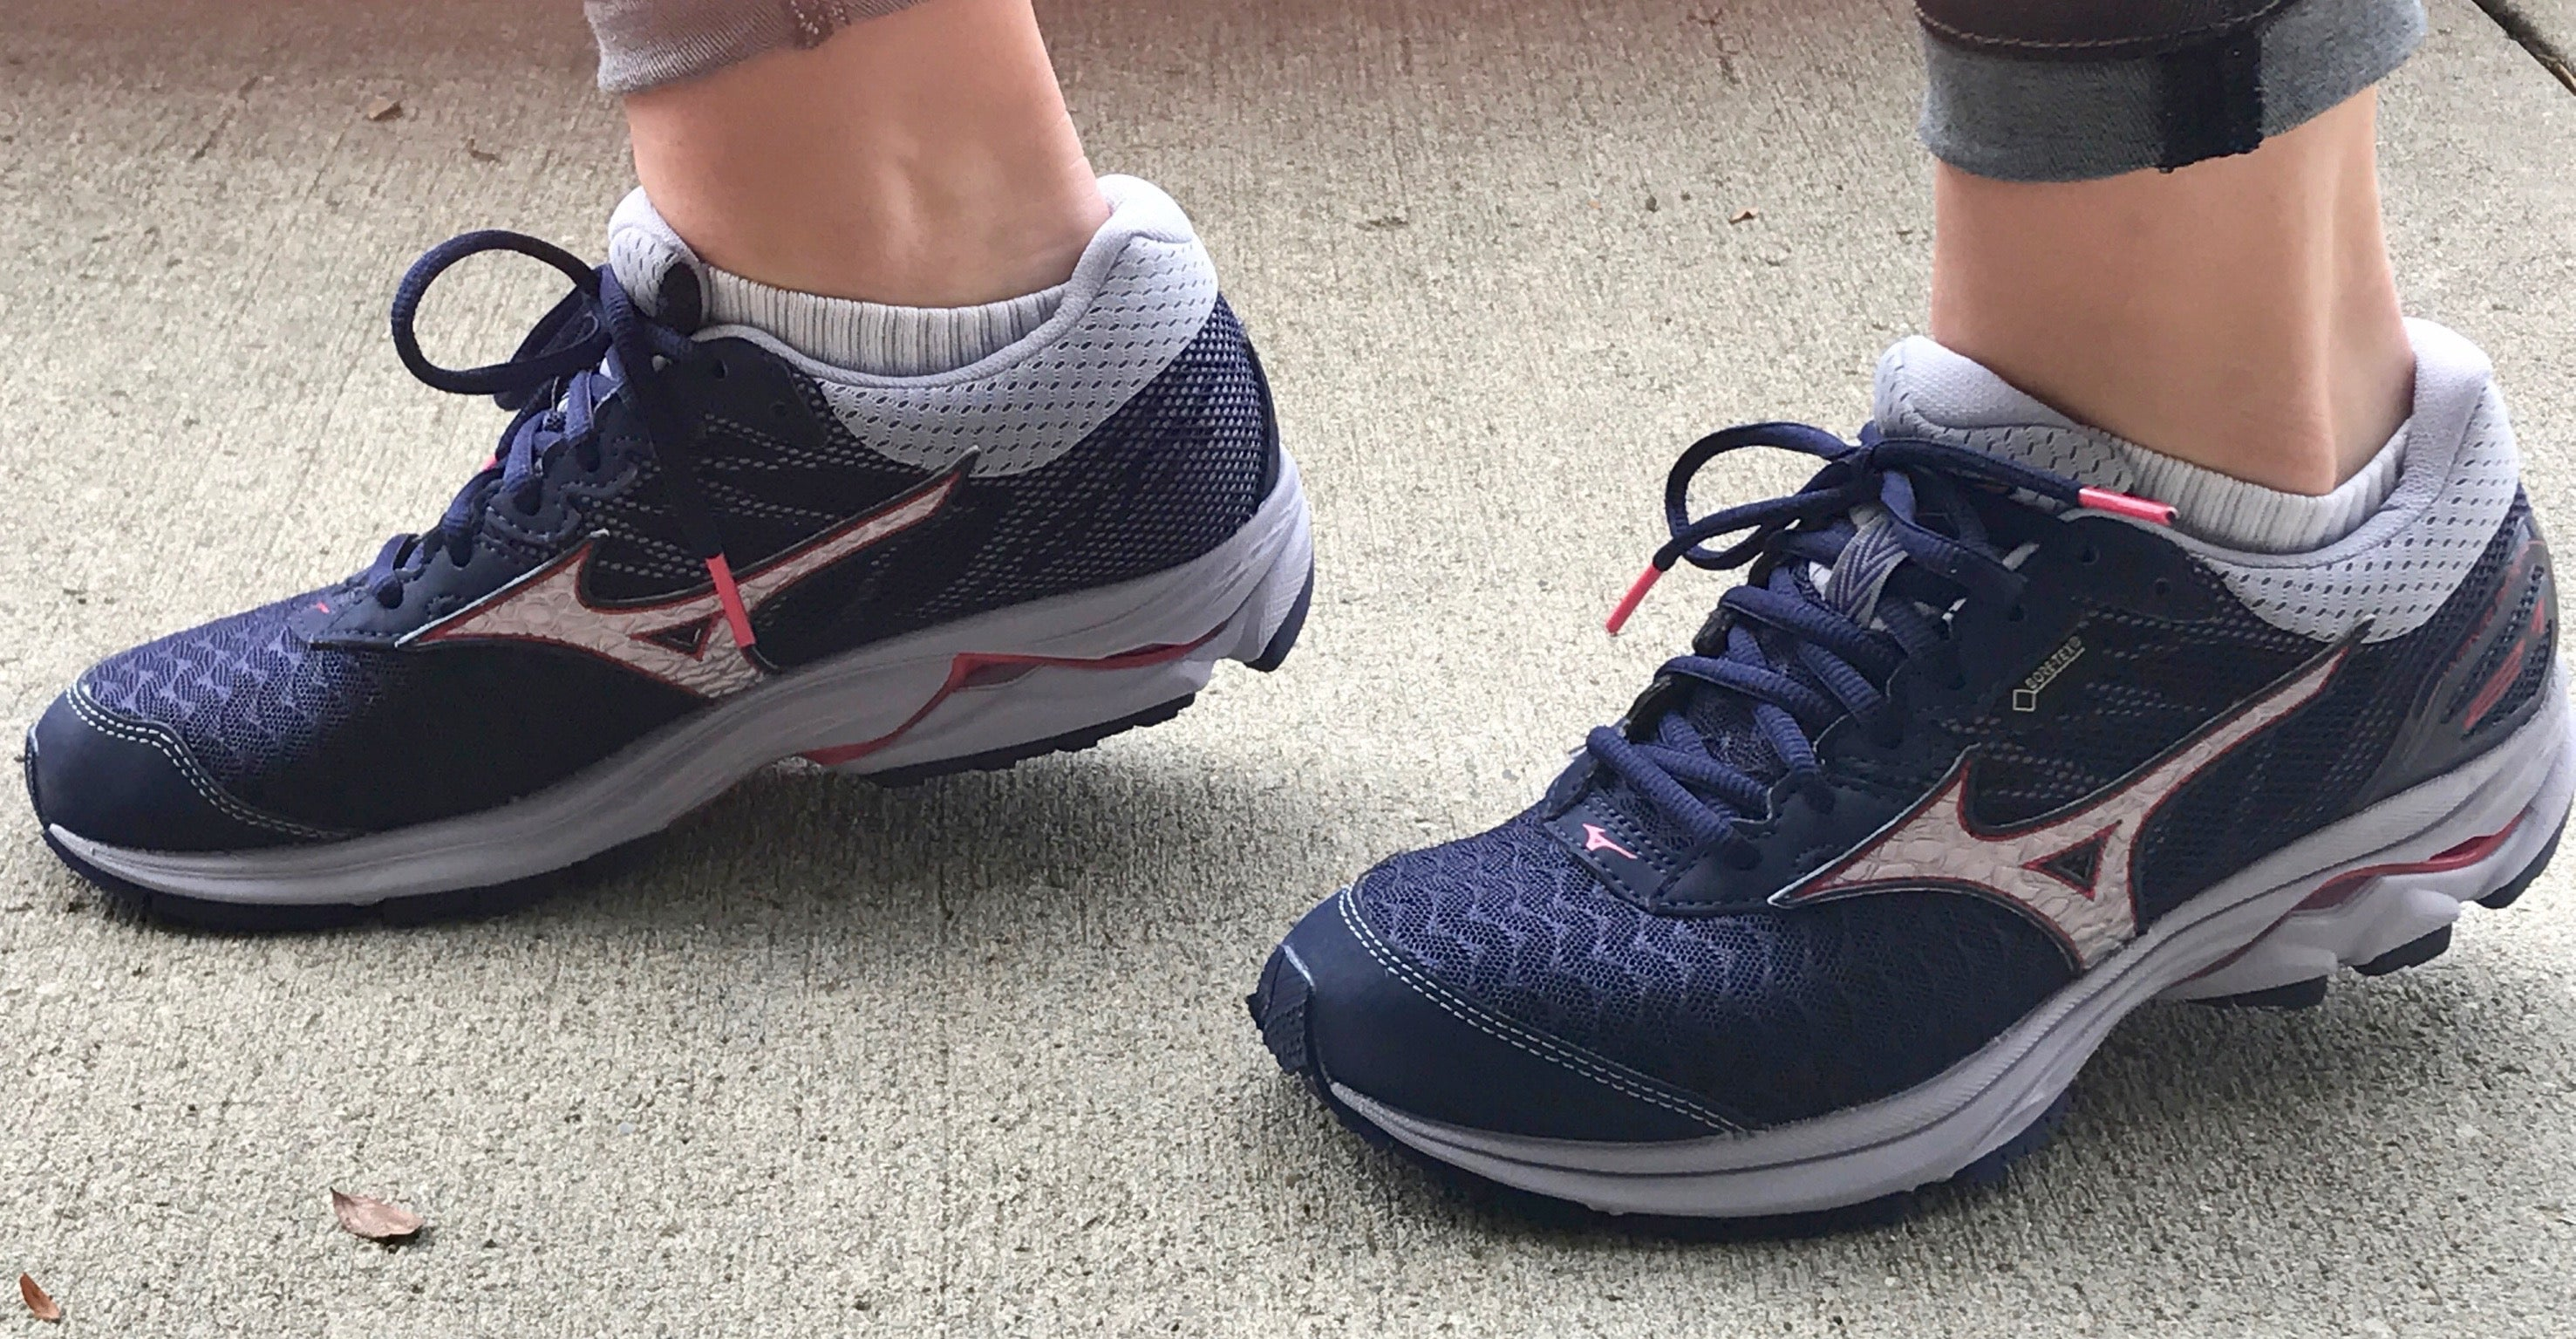 reputable site 62e8a fb5bf 4 Things to Love About the Mizuno Wave Rider 21 – Columbus ...